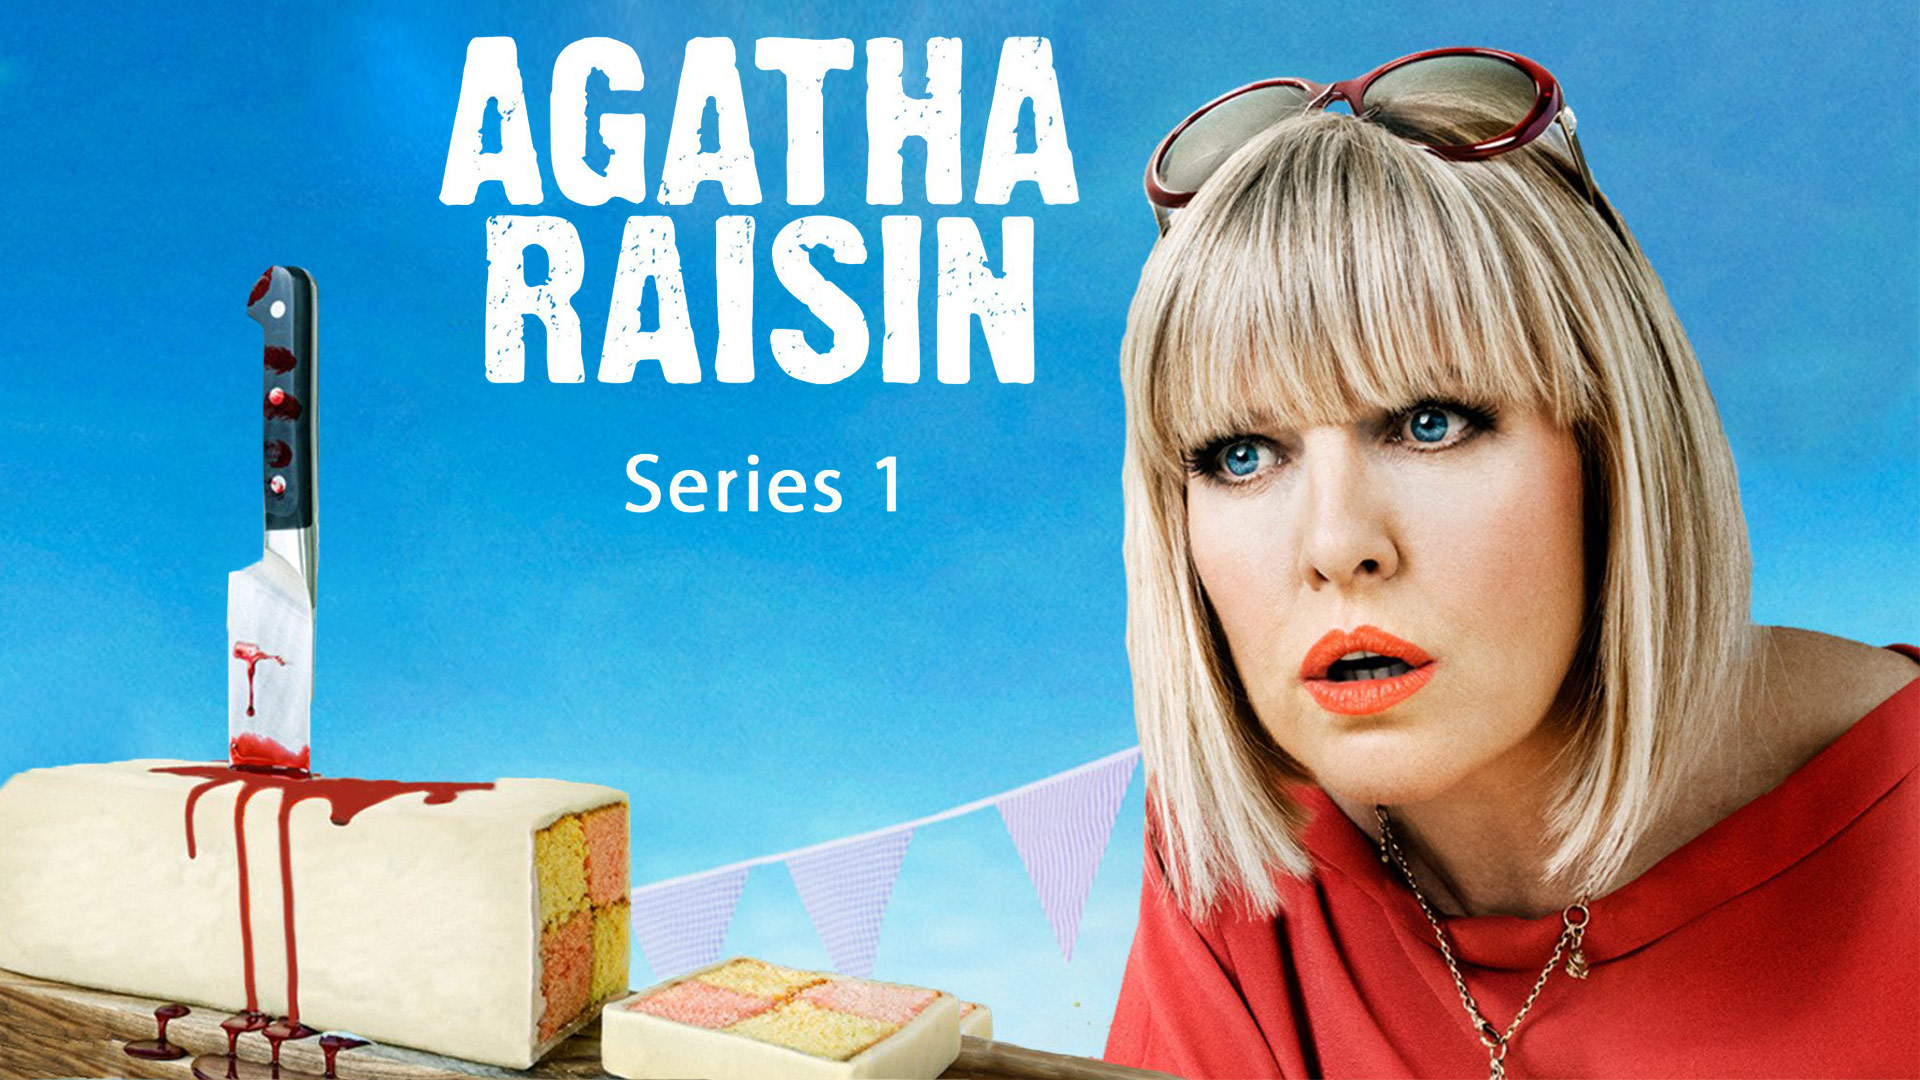 Agatha Raisin - Series 1